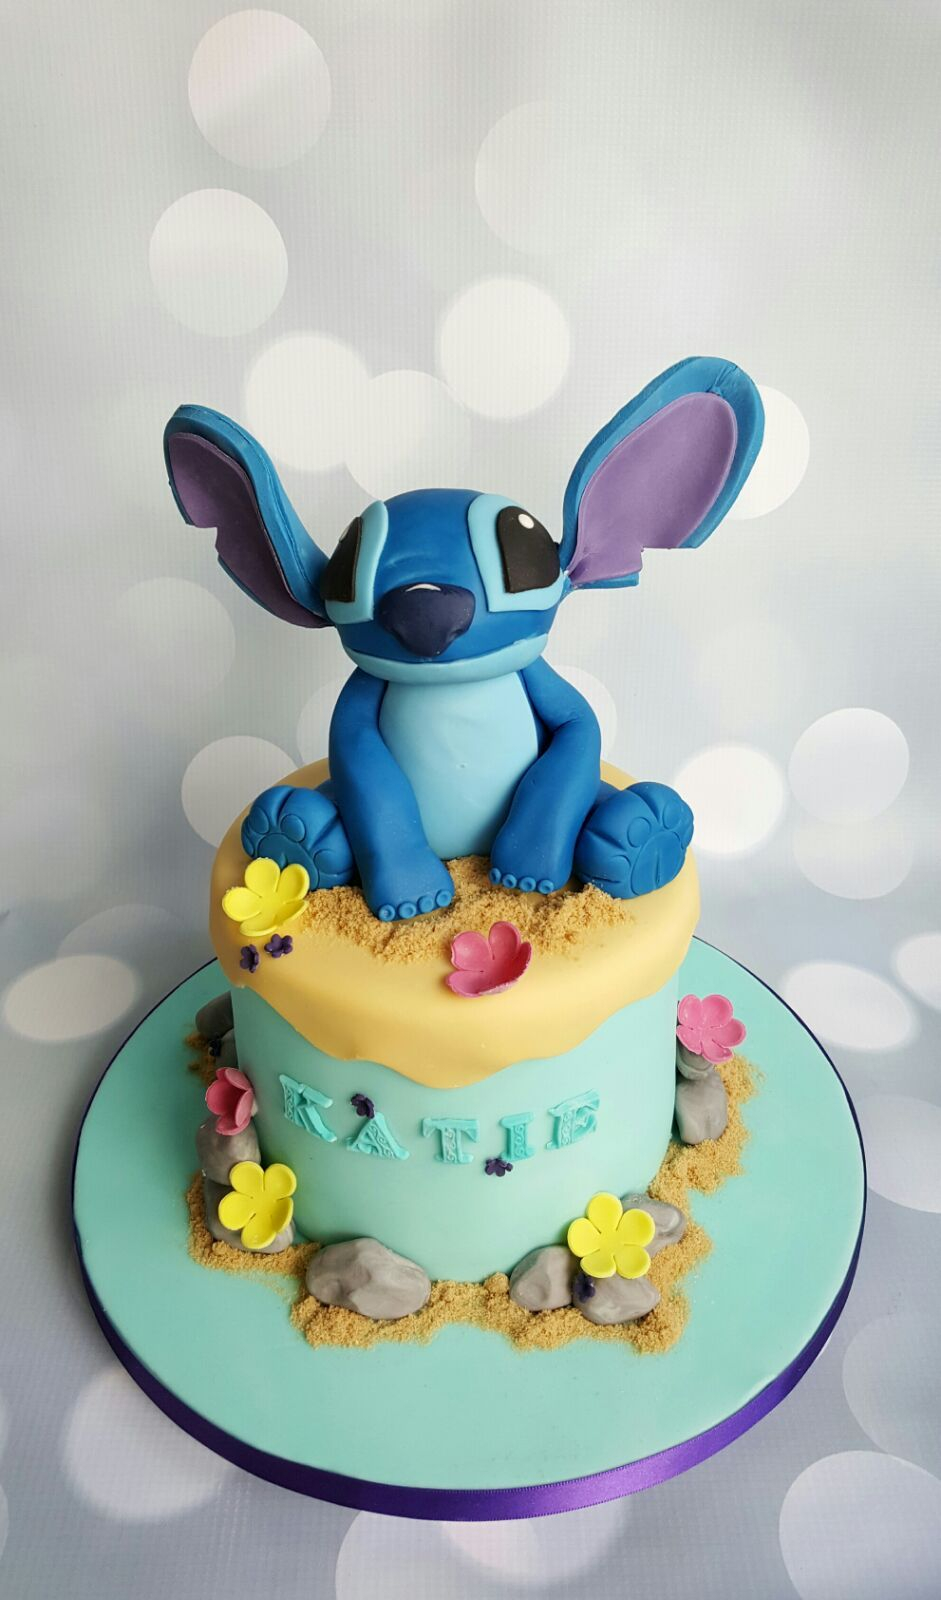 35+ Marvelous Picture of Stitch Birthday Cake